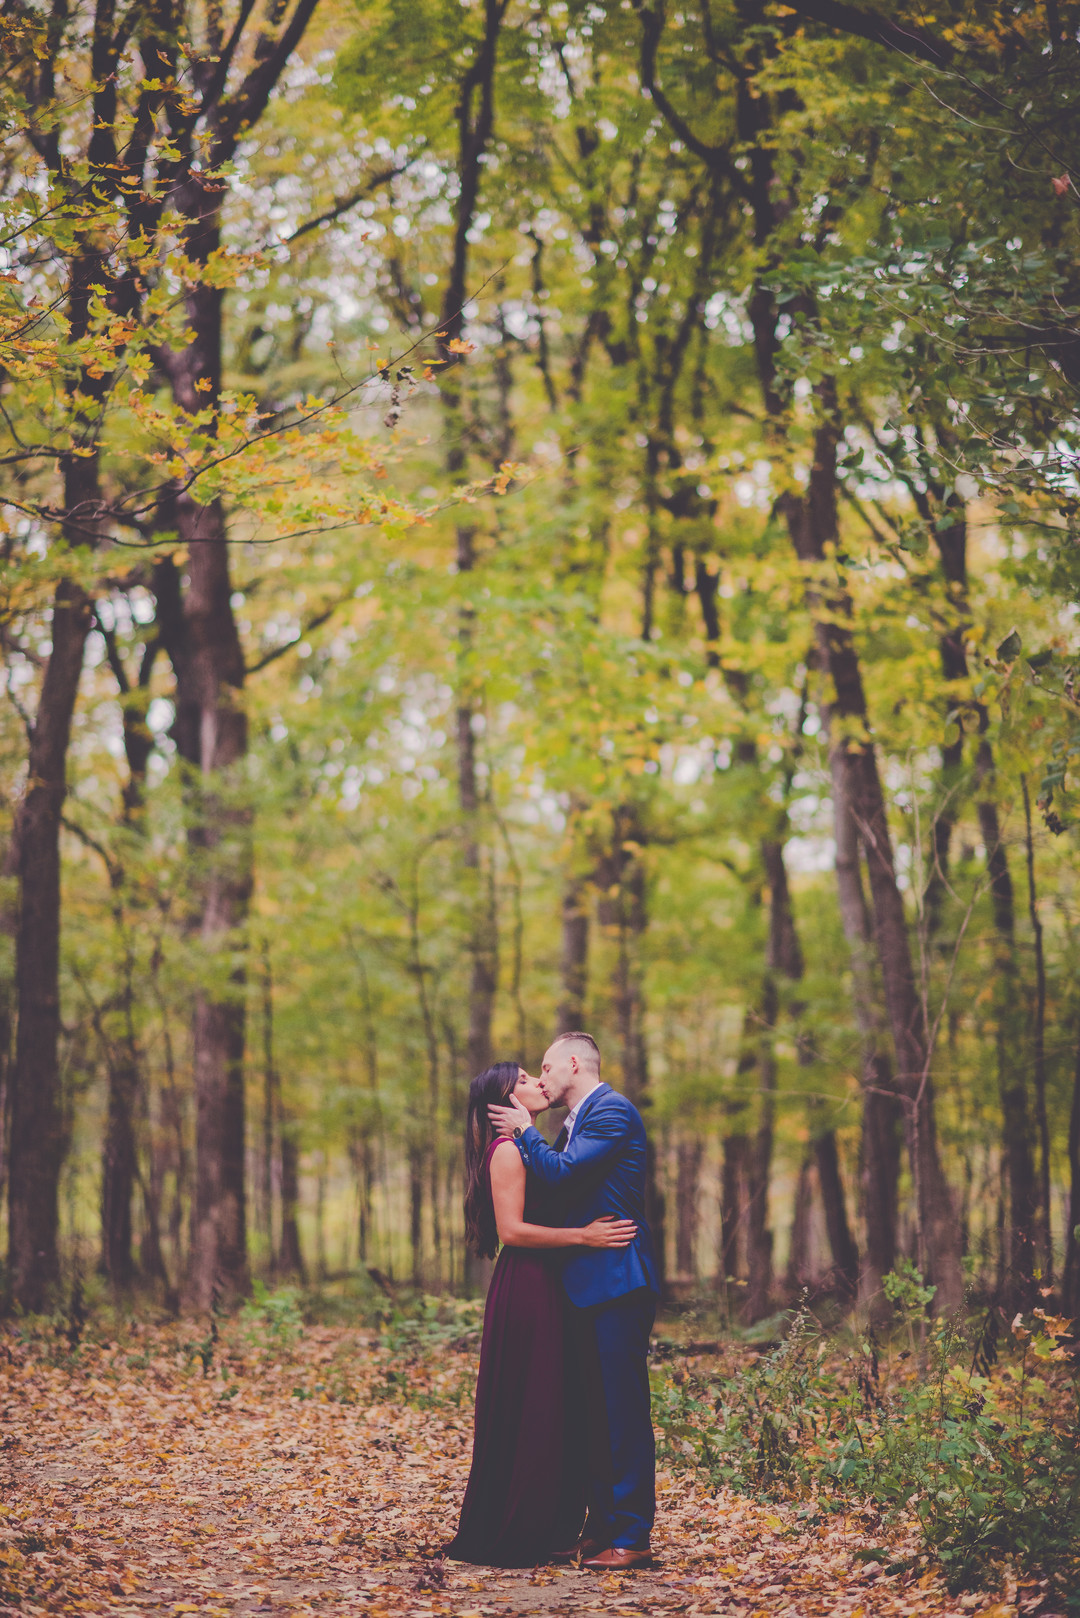 Romantic fall forest engagement session captured by Kara Evans Photographer. See more engagement photo ideas at CHItheeWED.com!